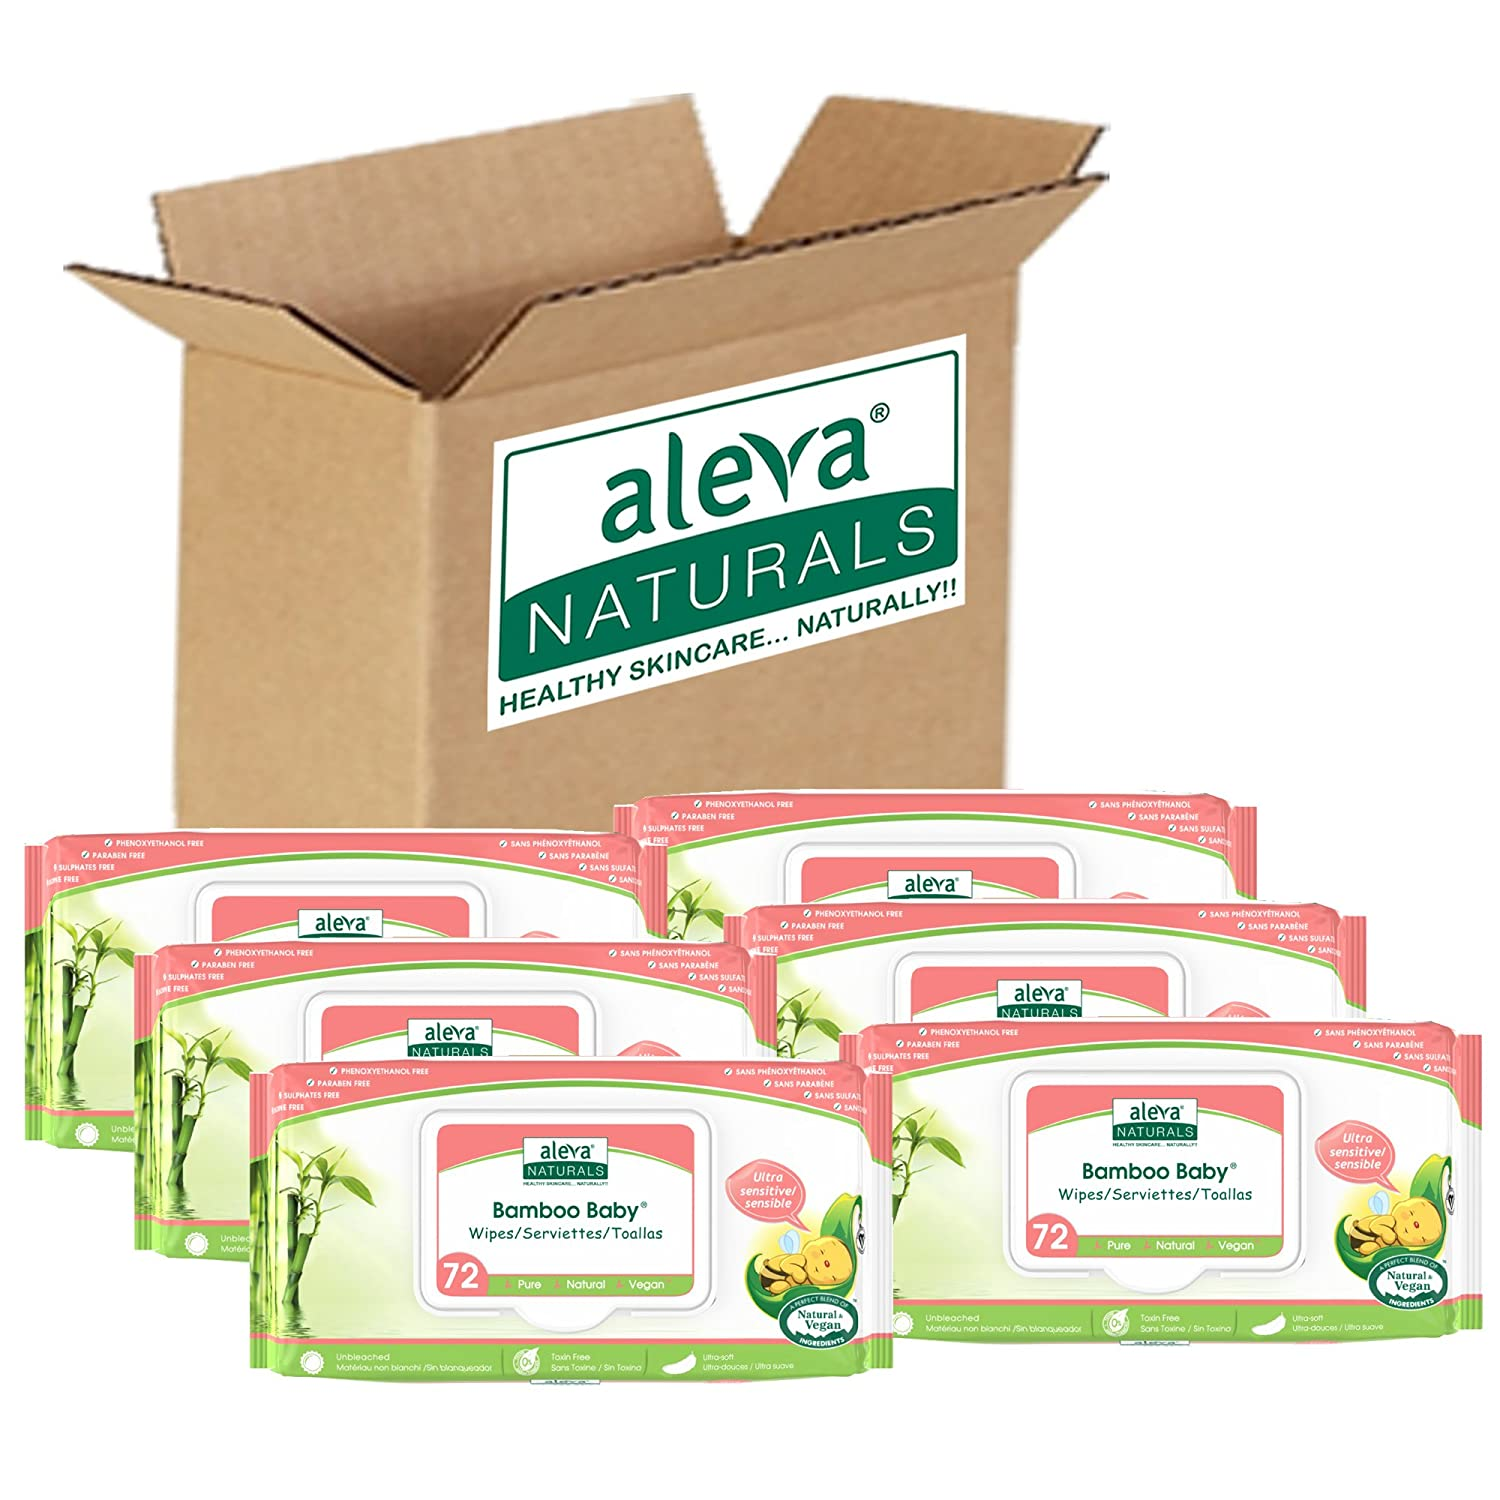 Amazon.com: Aleva Naturals Bamboo Baby Wipes, Sensitive, 216 Count (Pack of 4): Health & Personal Care